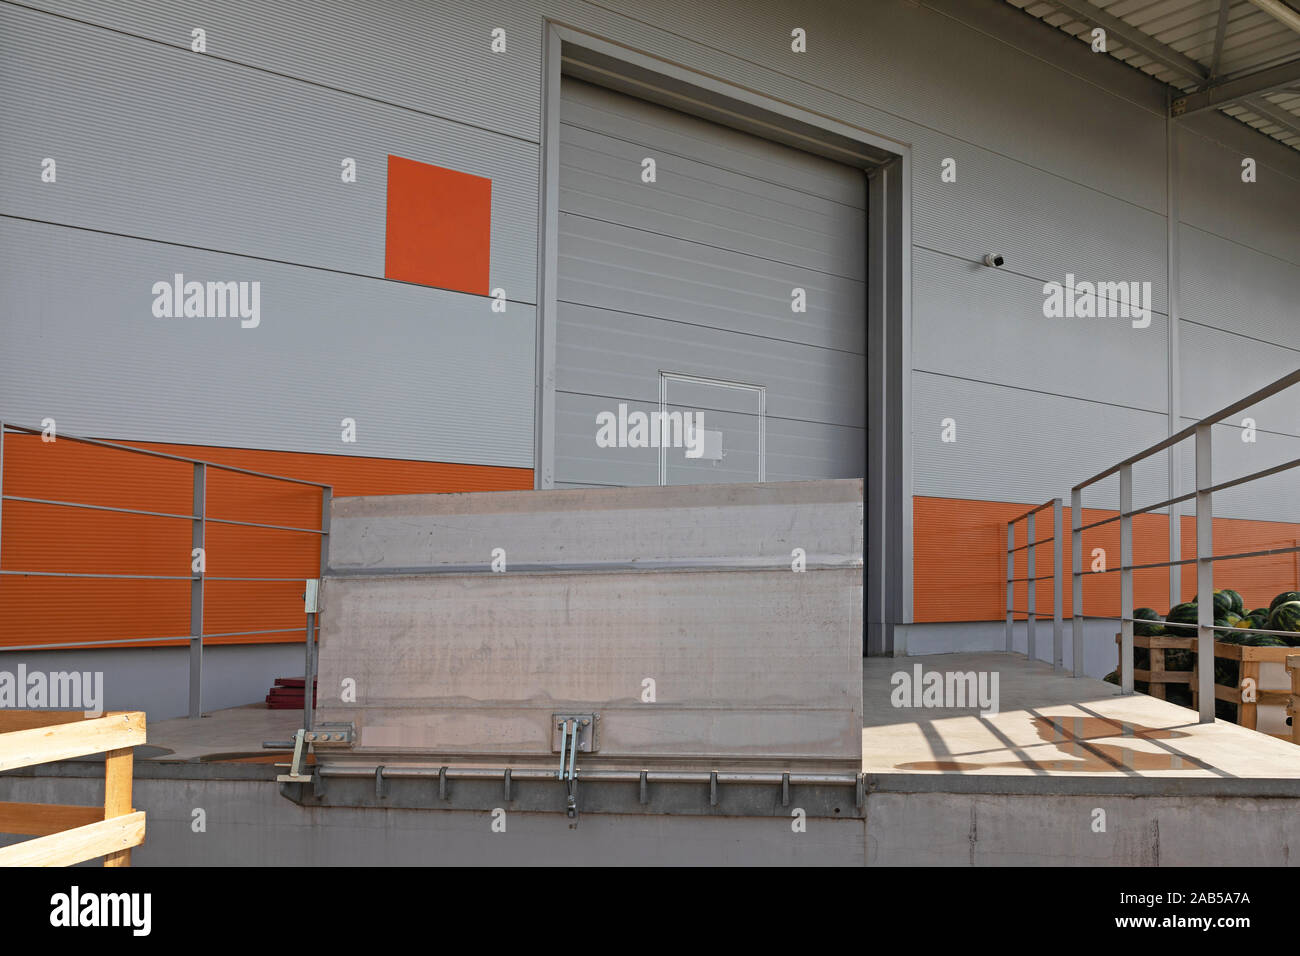 Loading Dock With Metal Ramp at Warehouse Stock Photo ... on warehouse construction types, warehouse interior, warehouse homes, warehouse personnel, construction designs, warehouse furniture, retail designs, warehouse full of cars, warehouse architecture, warehouse layout, warehouse equipment, warehouse design ideas, warehouse ceiling, warehouse shopping, warehouse shipping area, timber designs, warehouse organization, warehouse heavy smoke, warehouse expansion, warehouse insulation,